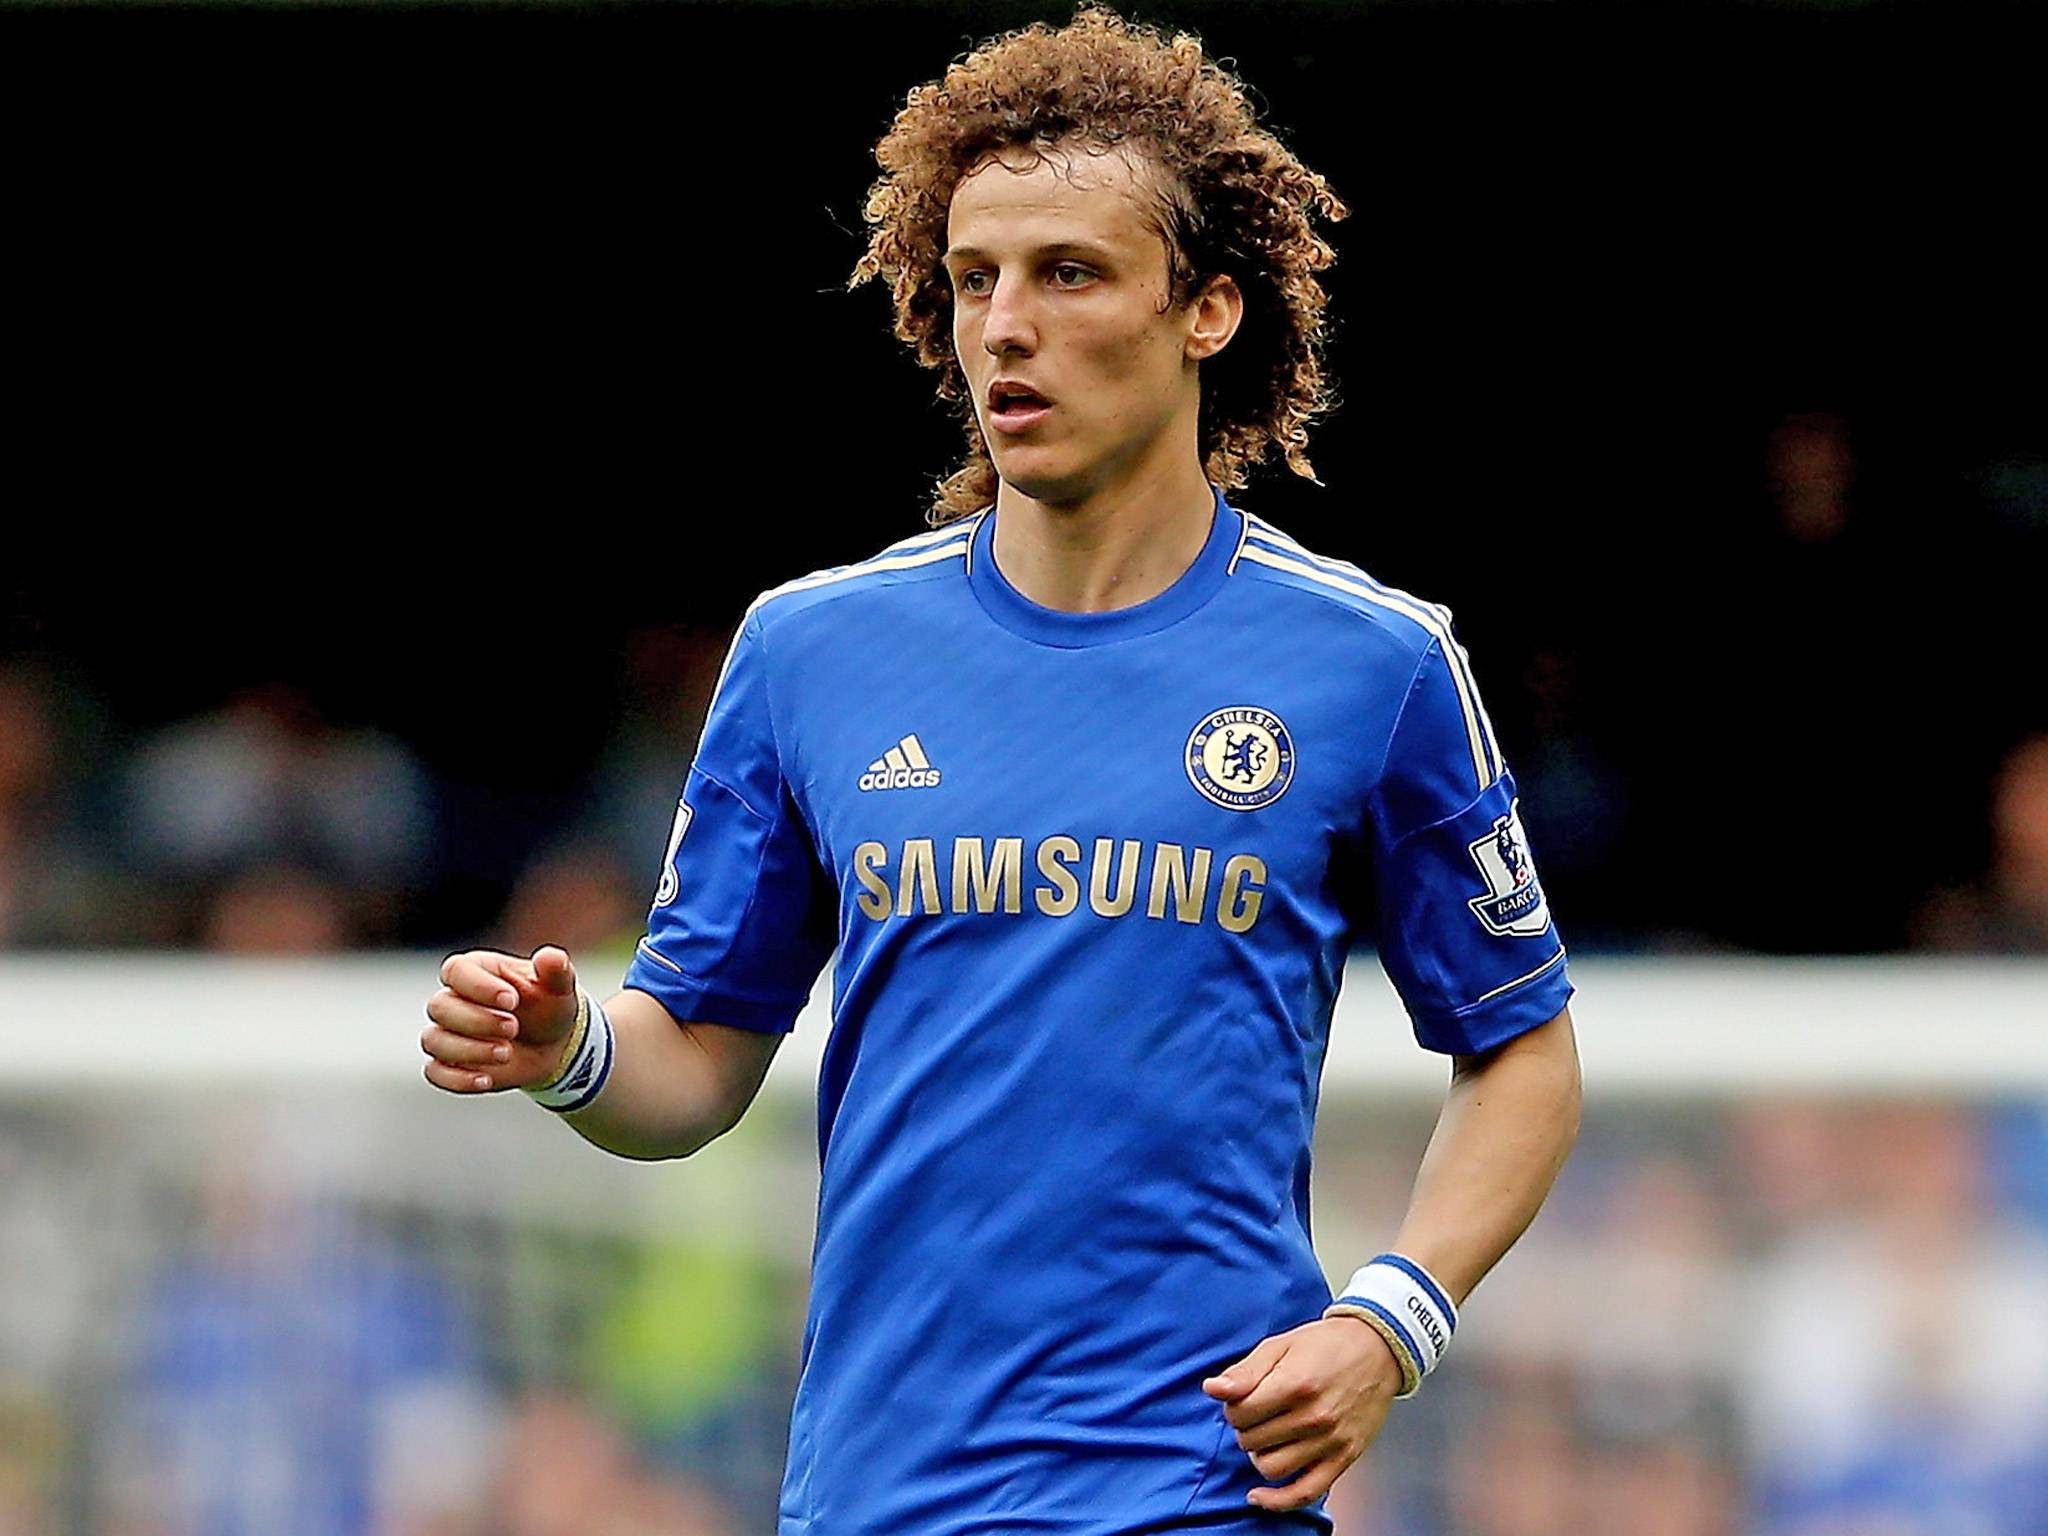 David Luiz Wallpaper 11   2048 X 1536 stmednet 2048x1536